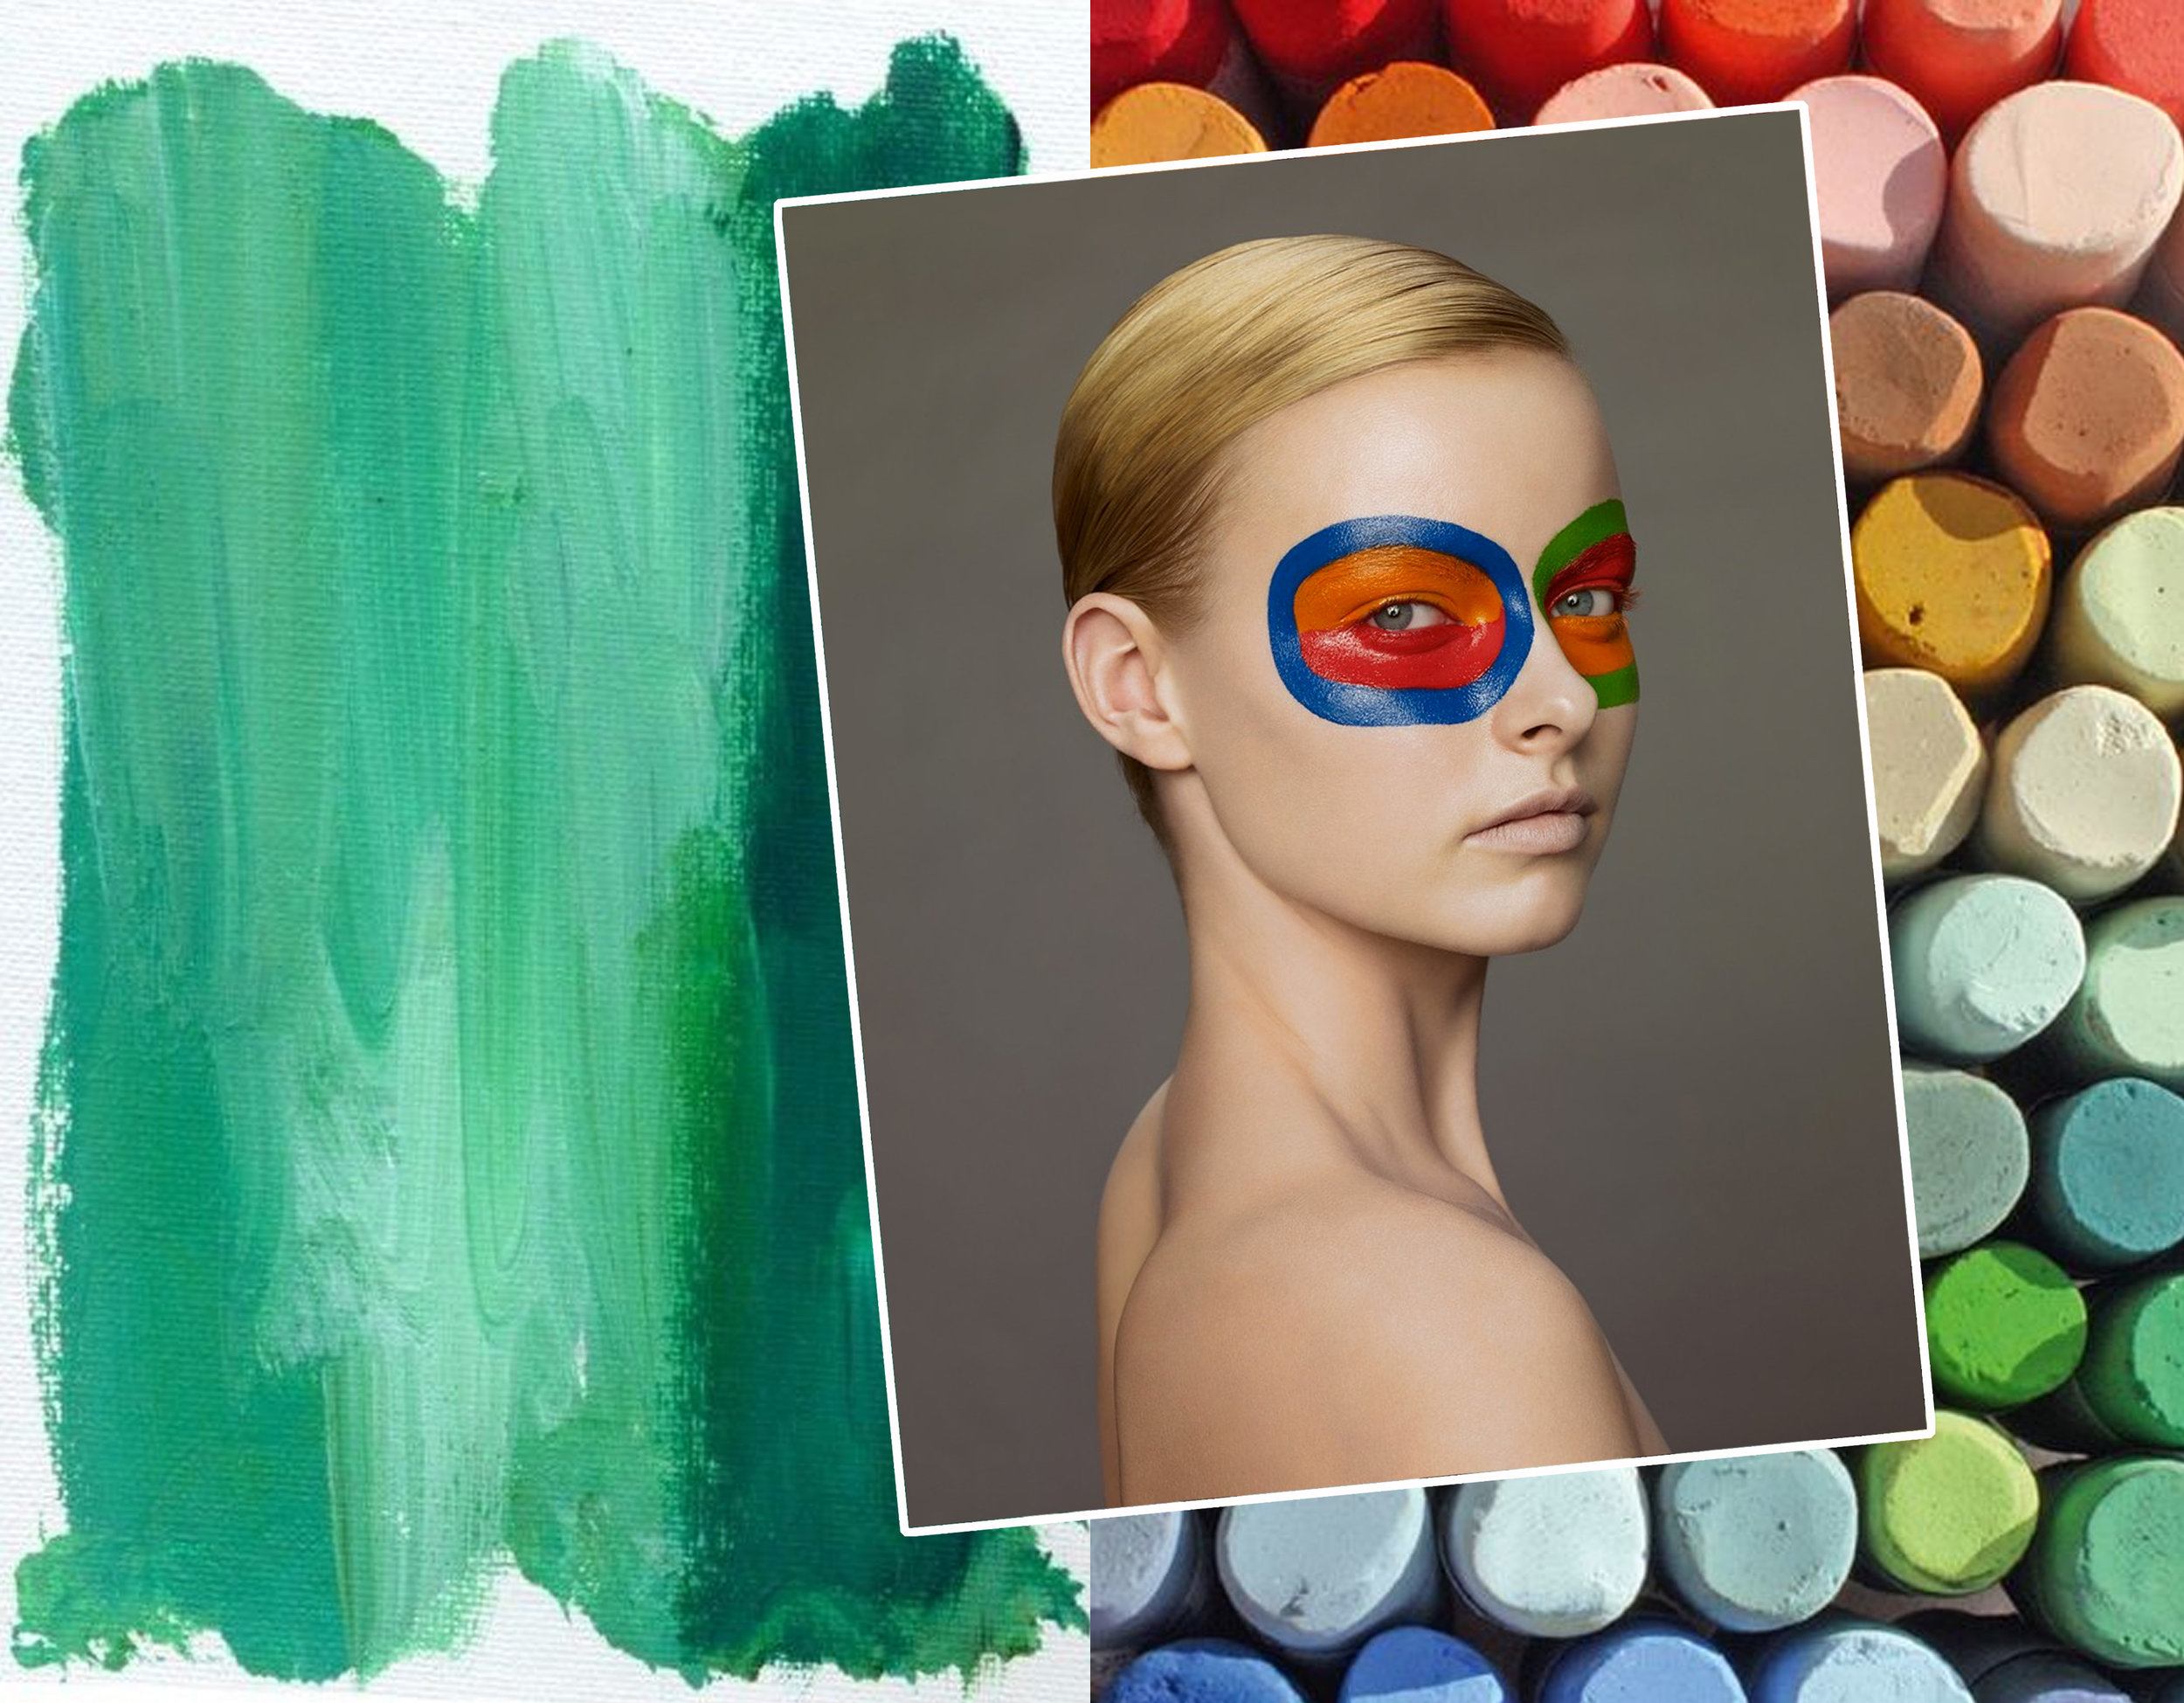 artwork via  Pinterest  - pastels via  Artists & Illustrators  - picture of woman by Erwin Olaf - make up Topolino for Vogue NL via  B&A